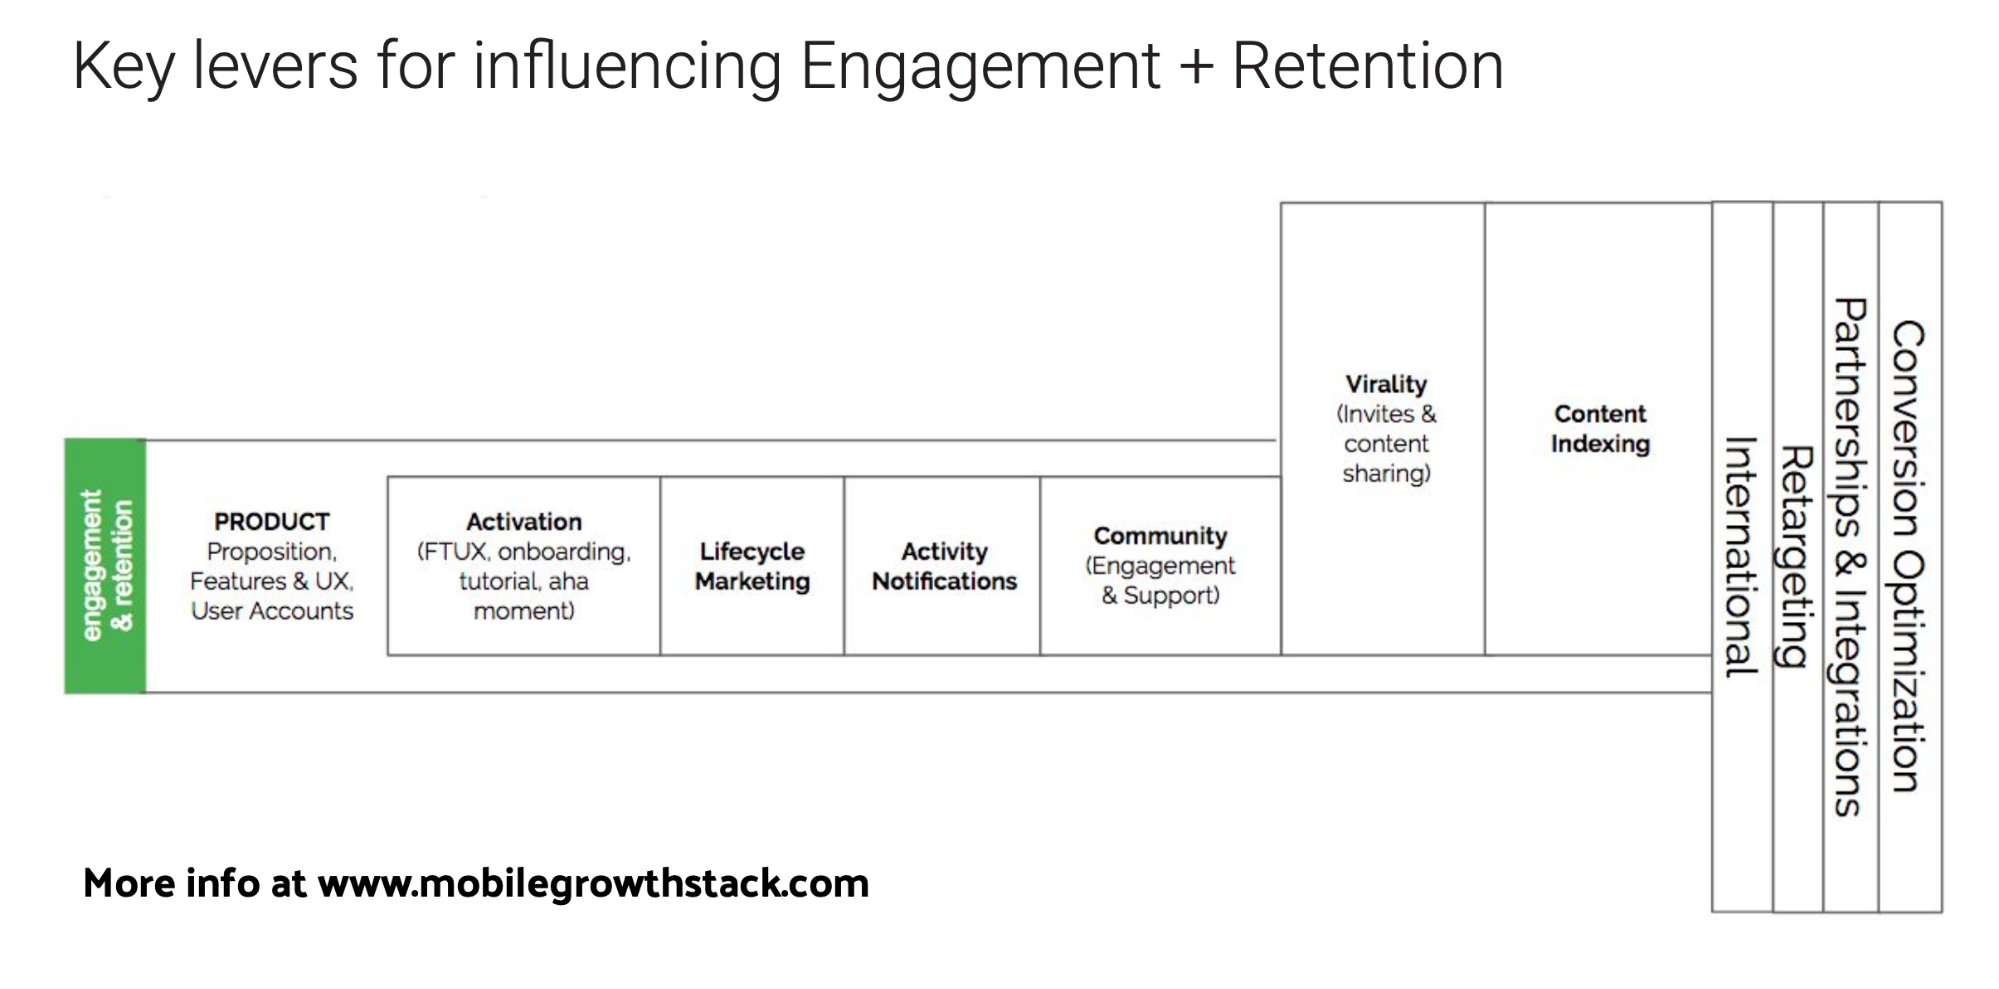 key levers for influencing engagement + retention